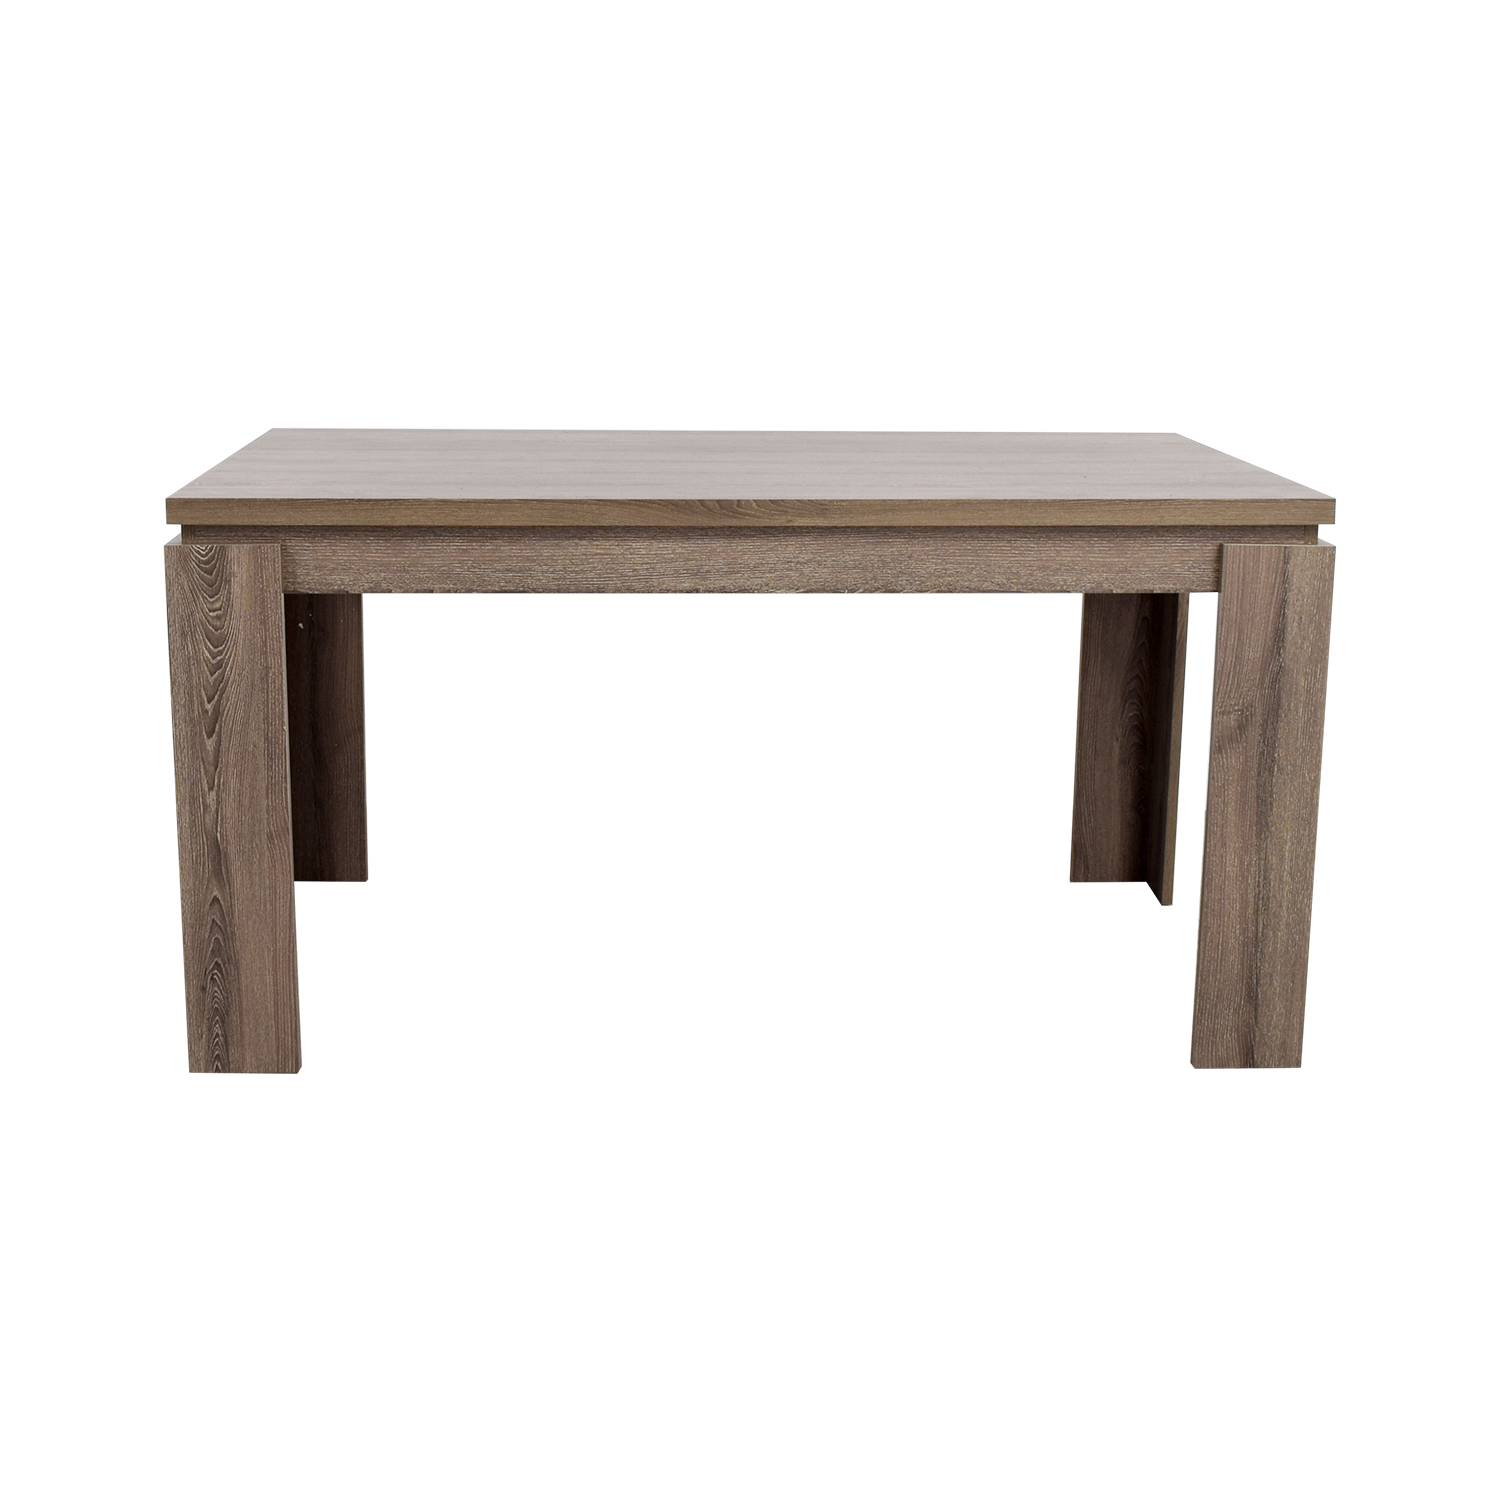 buy WilliamBrugman WilliamBrugman Rustic Grey Table online